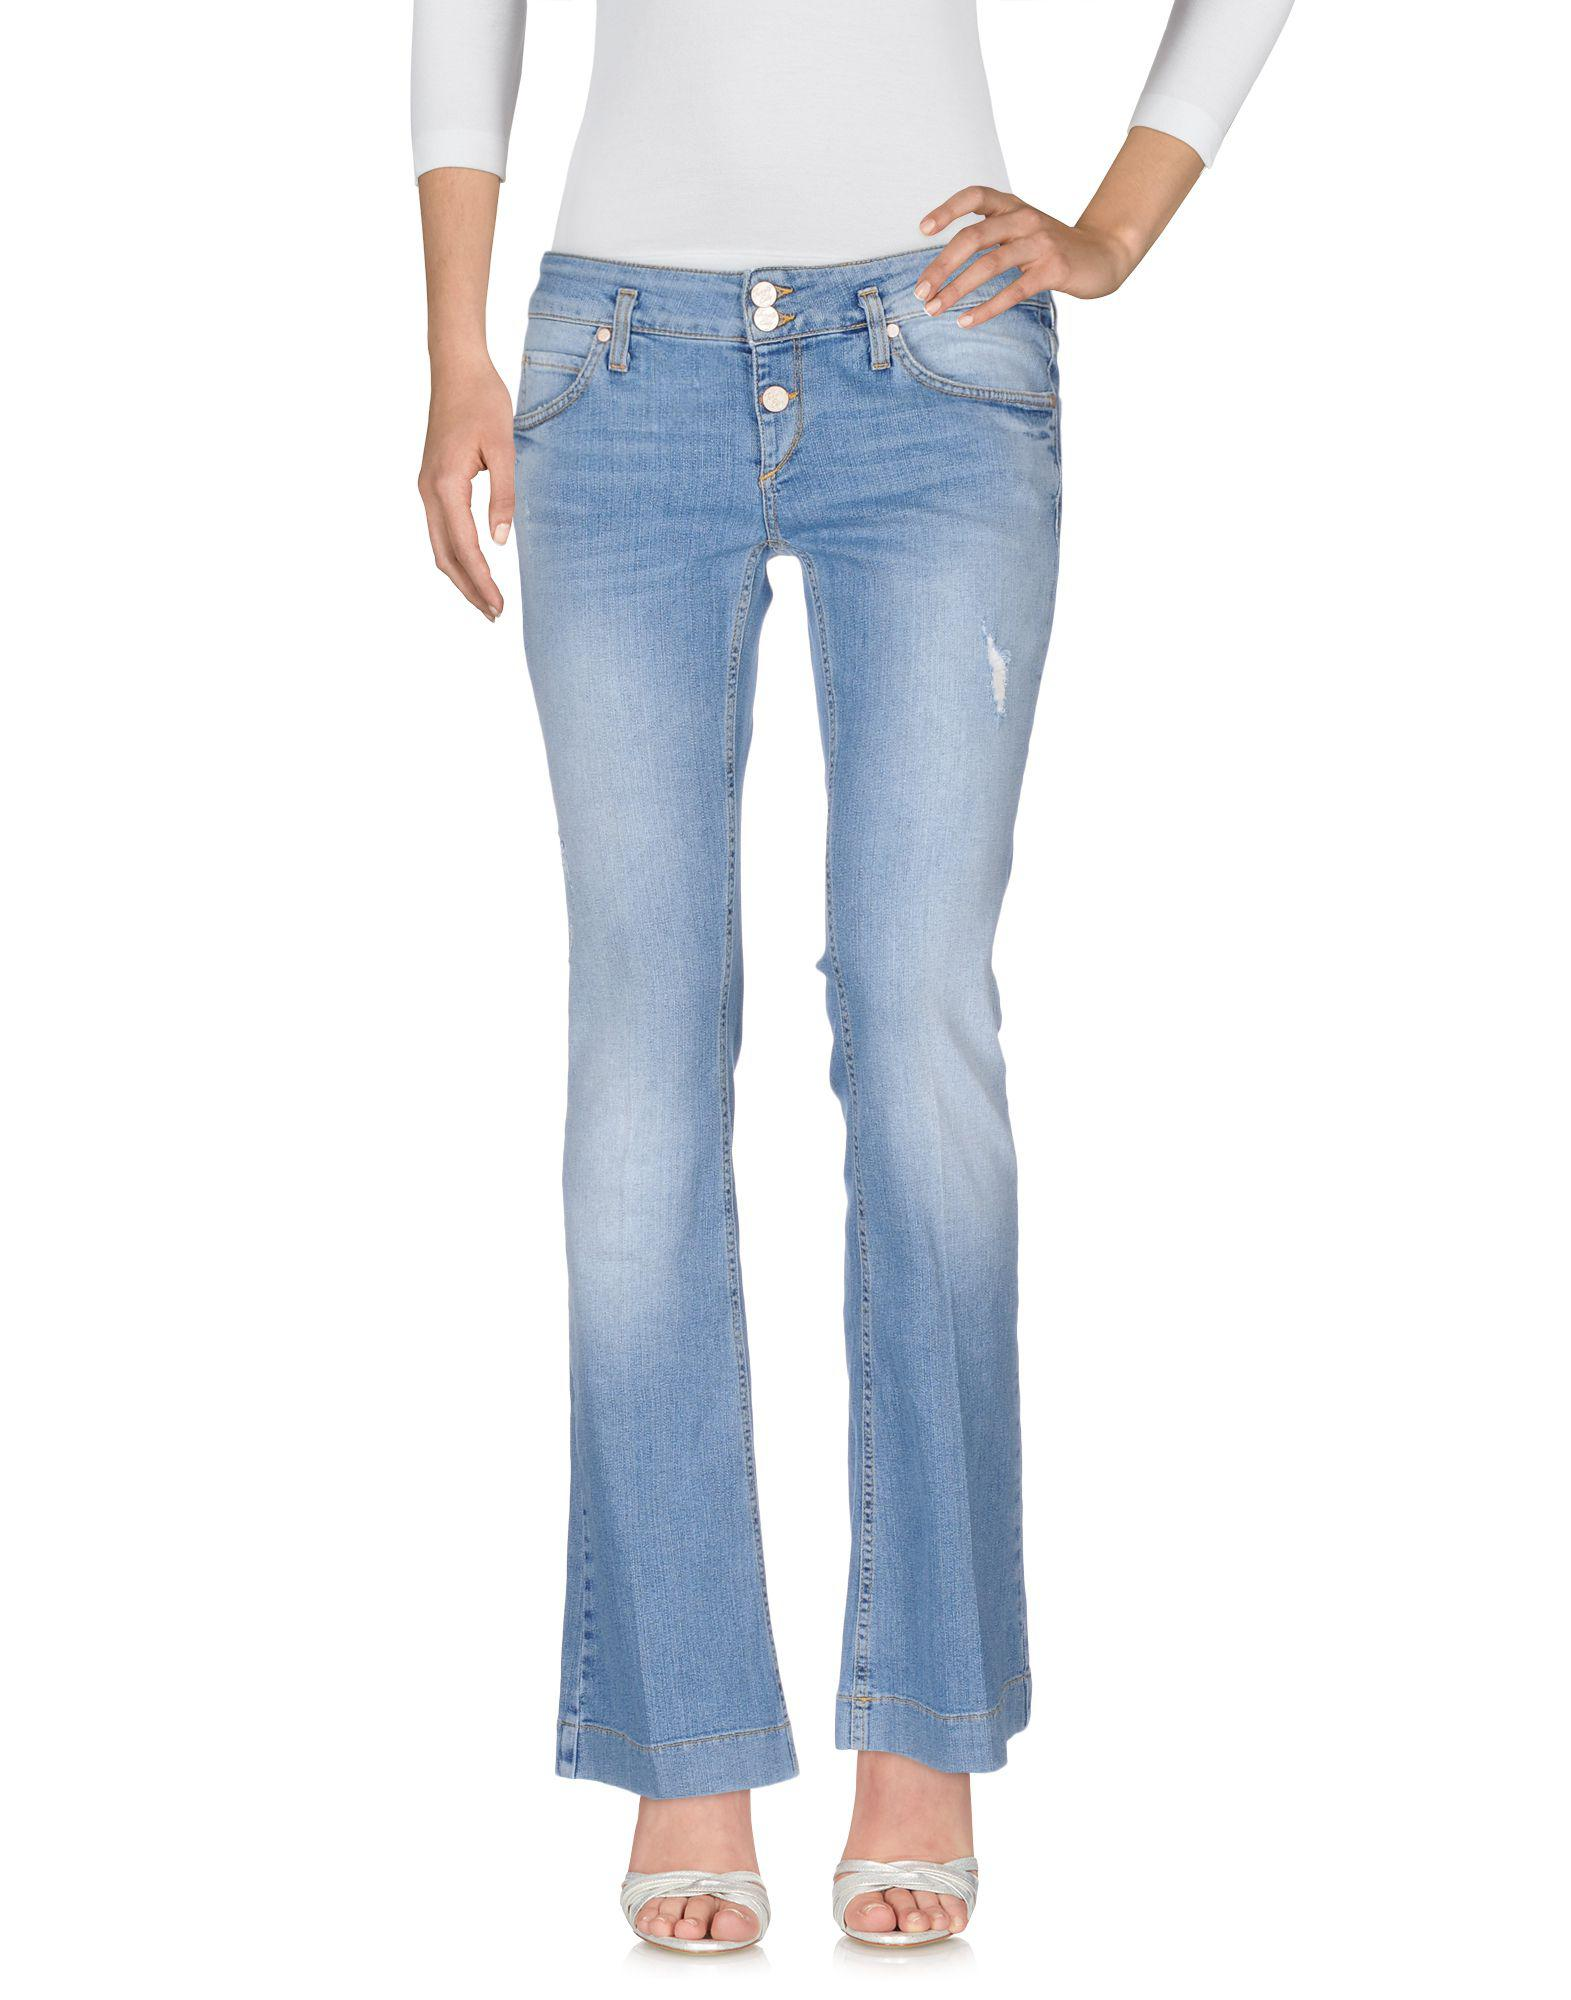 DENIM - Denim trousers Kaos ln0cI